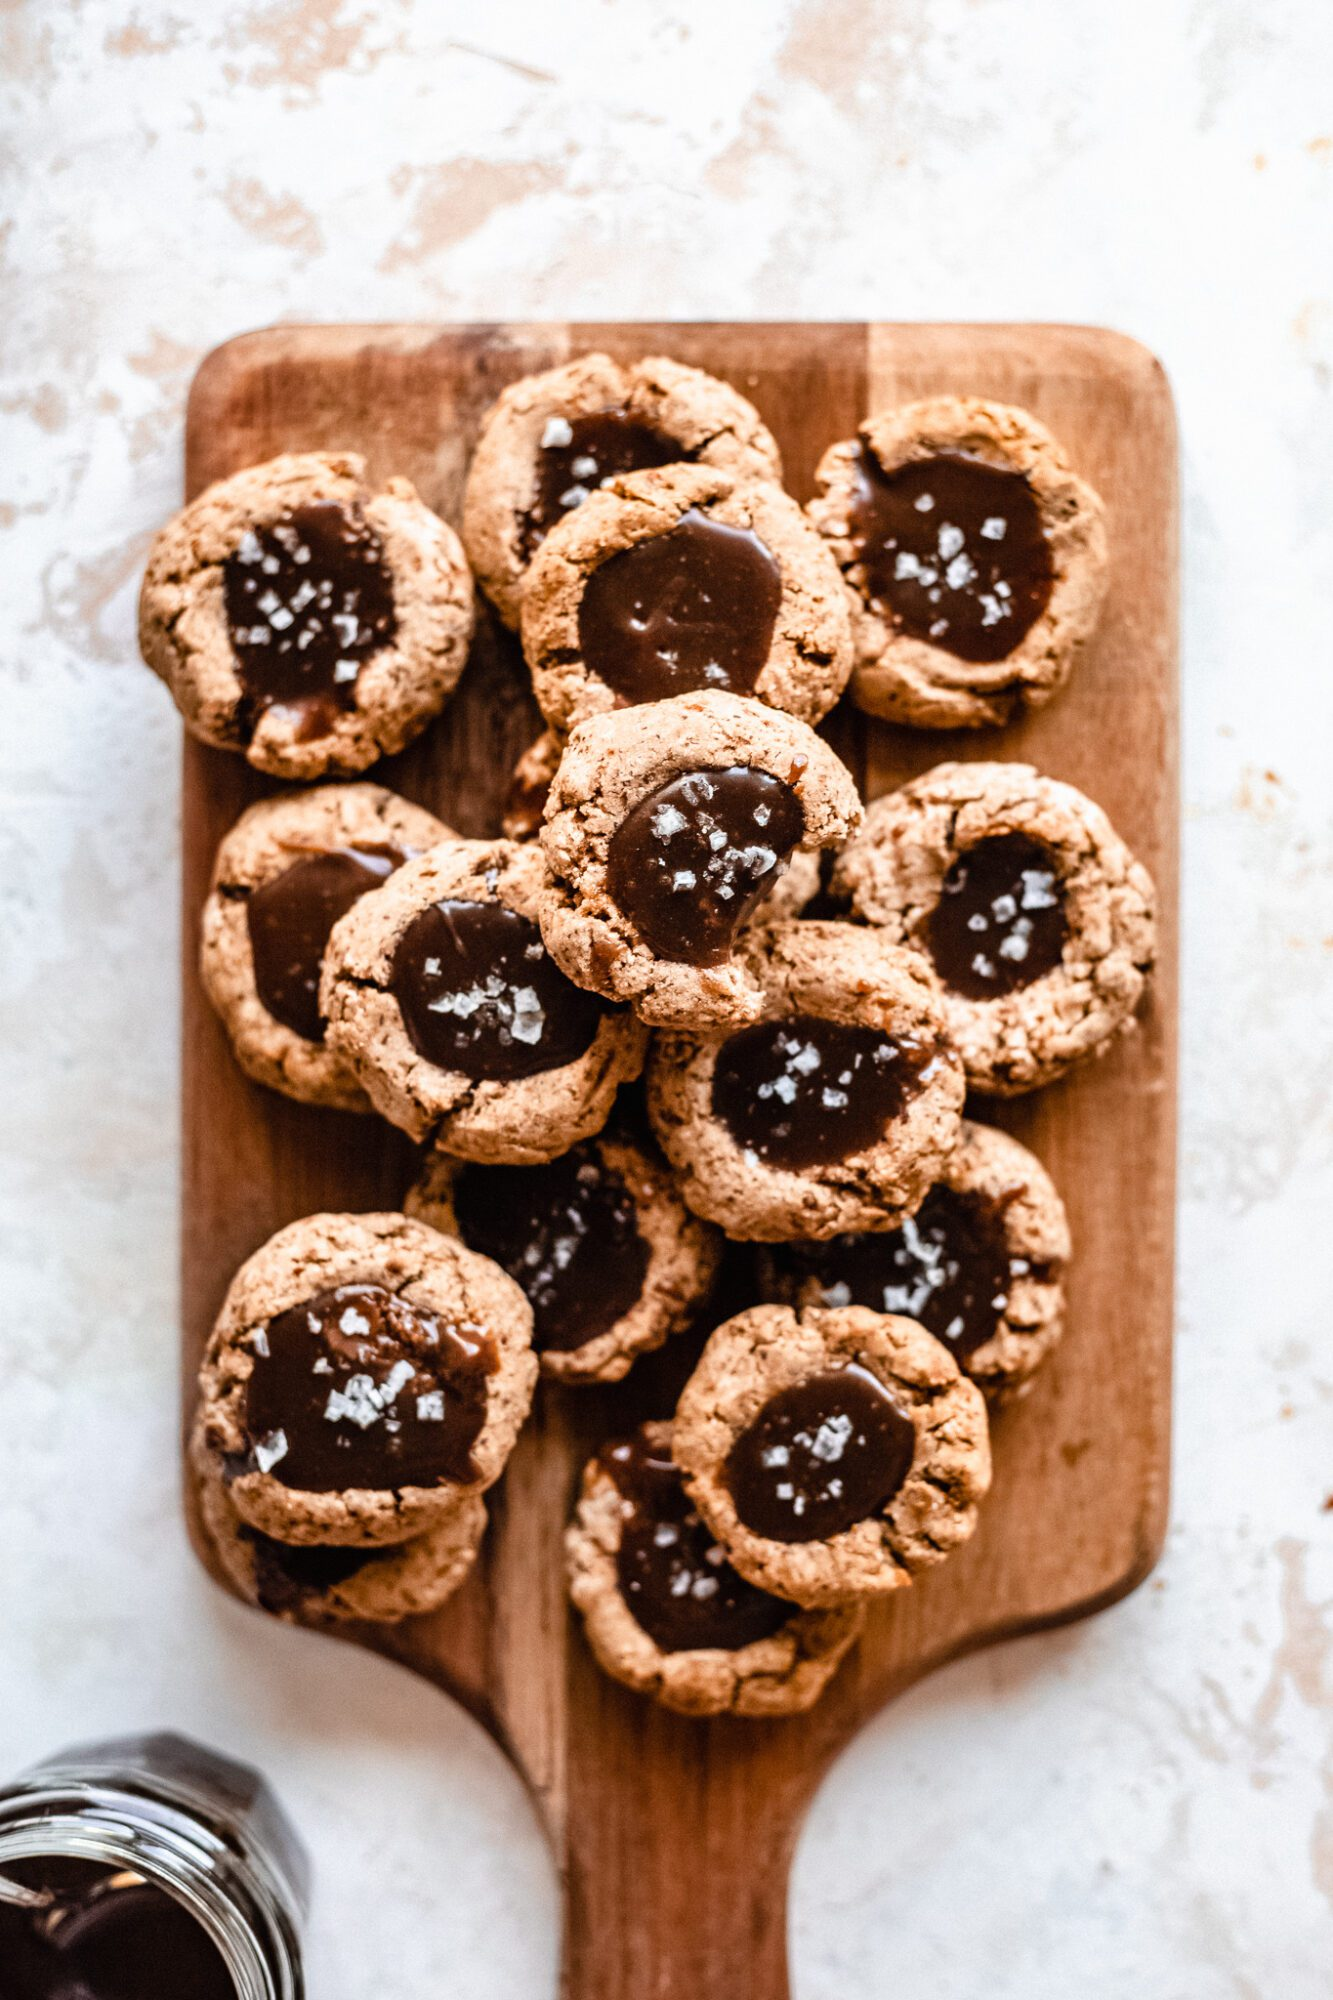 wooden board with caramel thumbprint cookies stacked